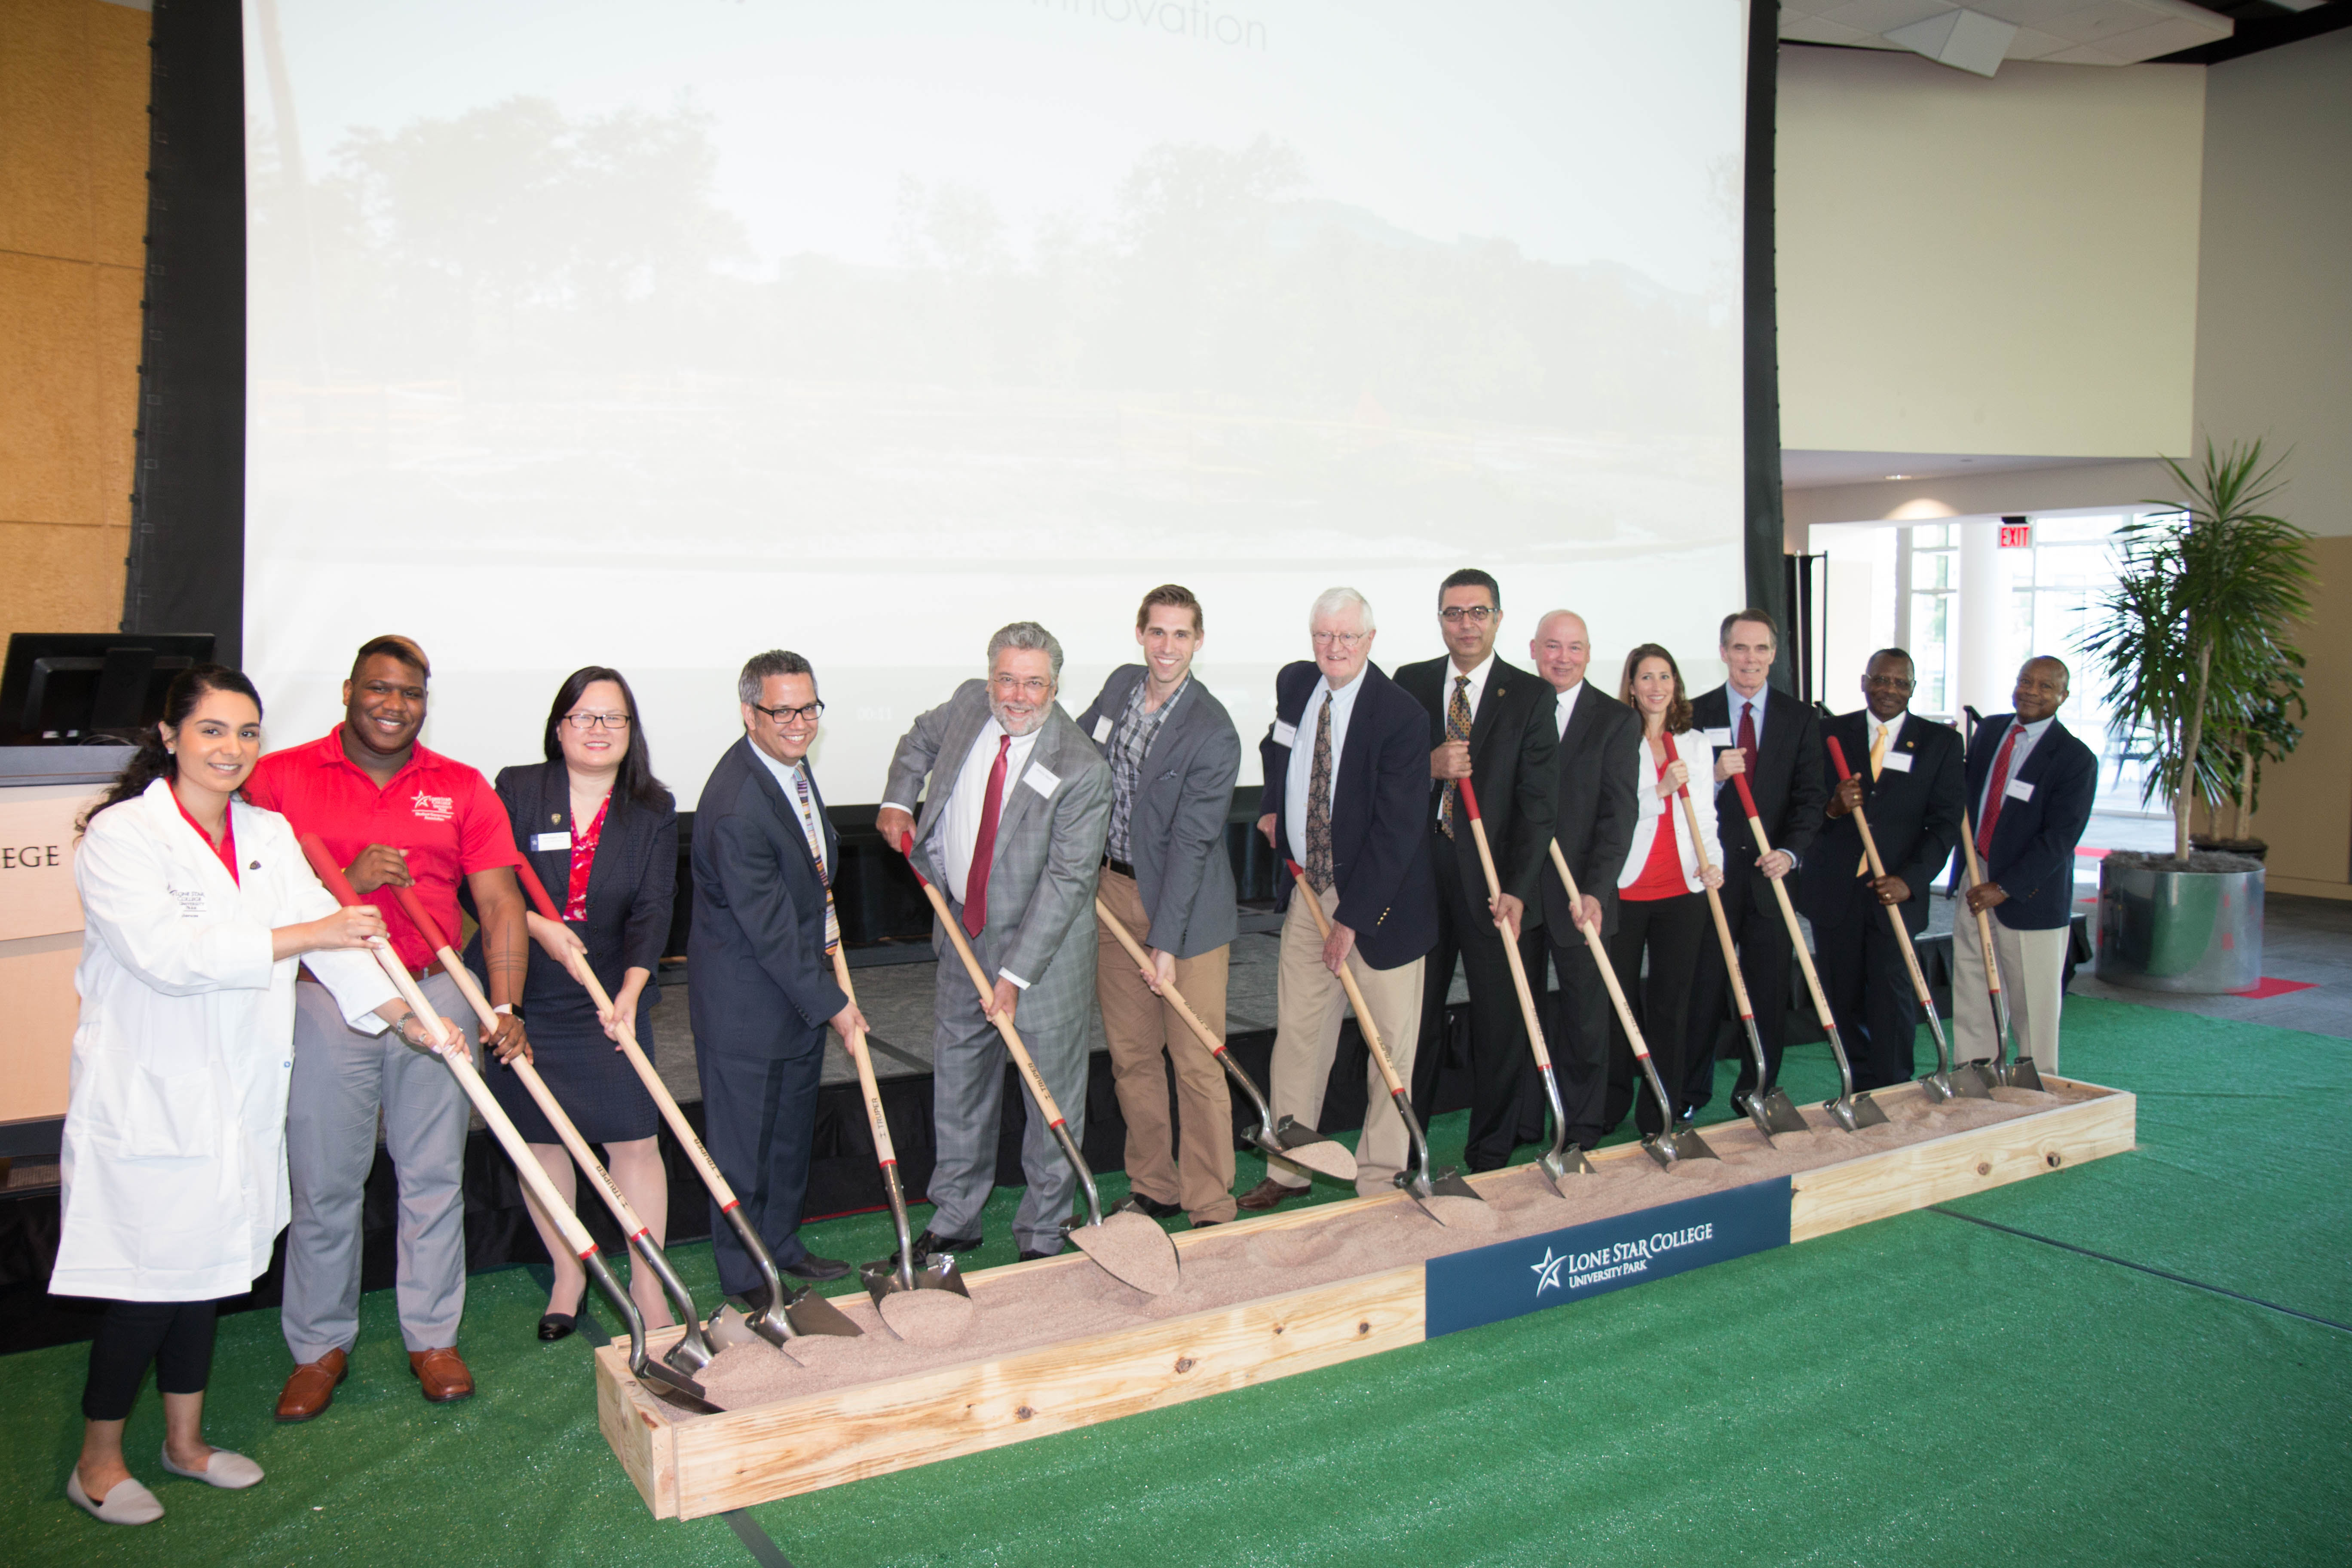 Ground Breaking VIP's with Shovels